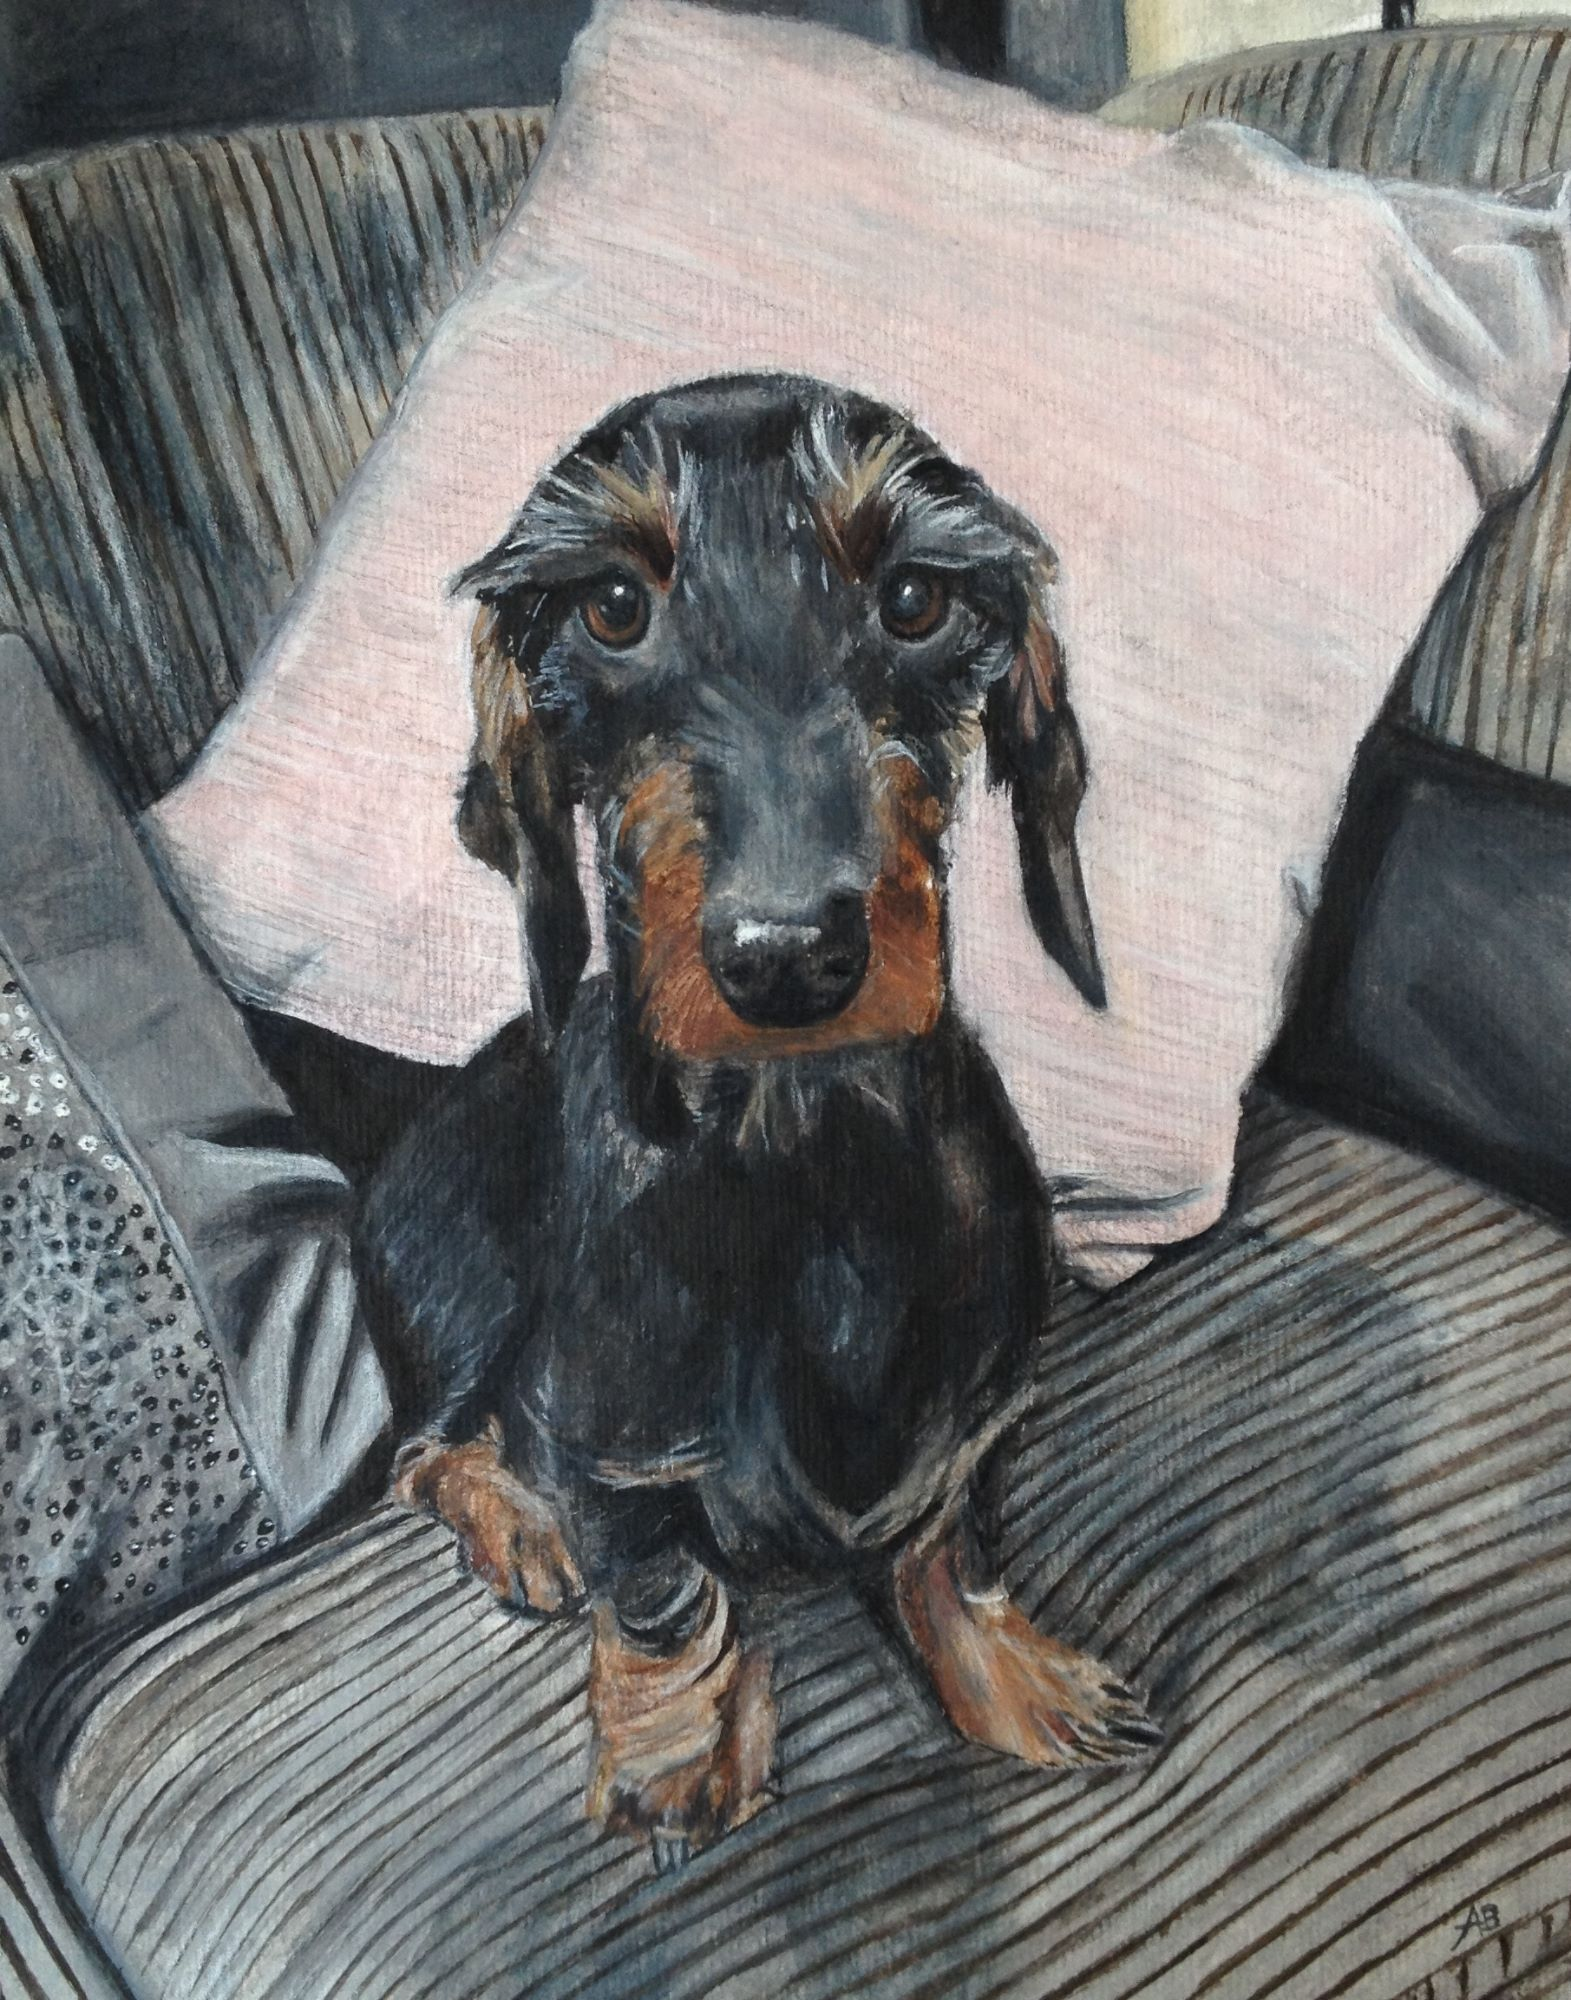 Ross the Daschund